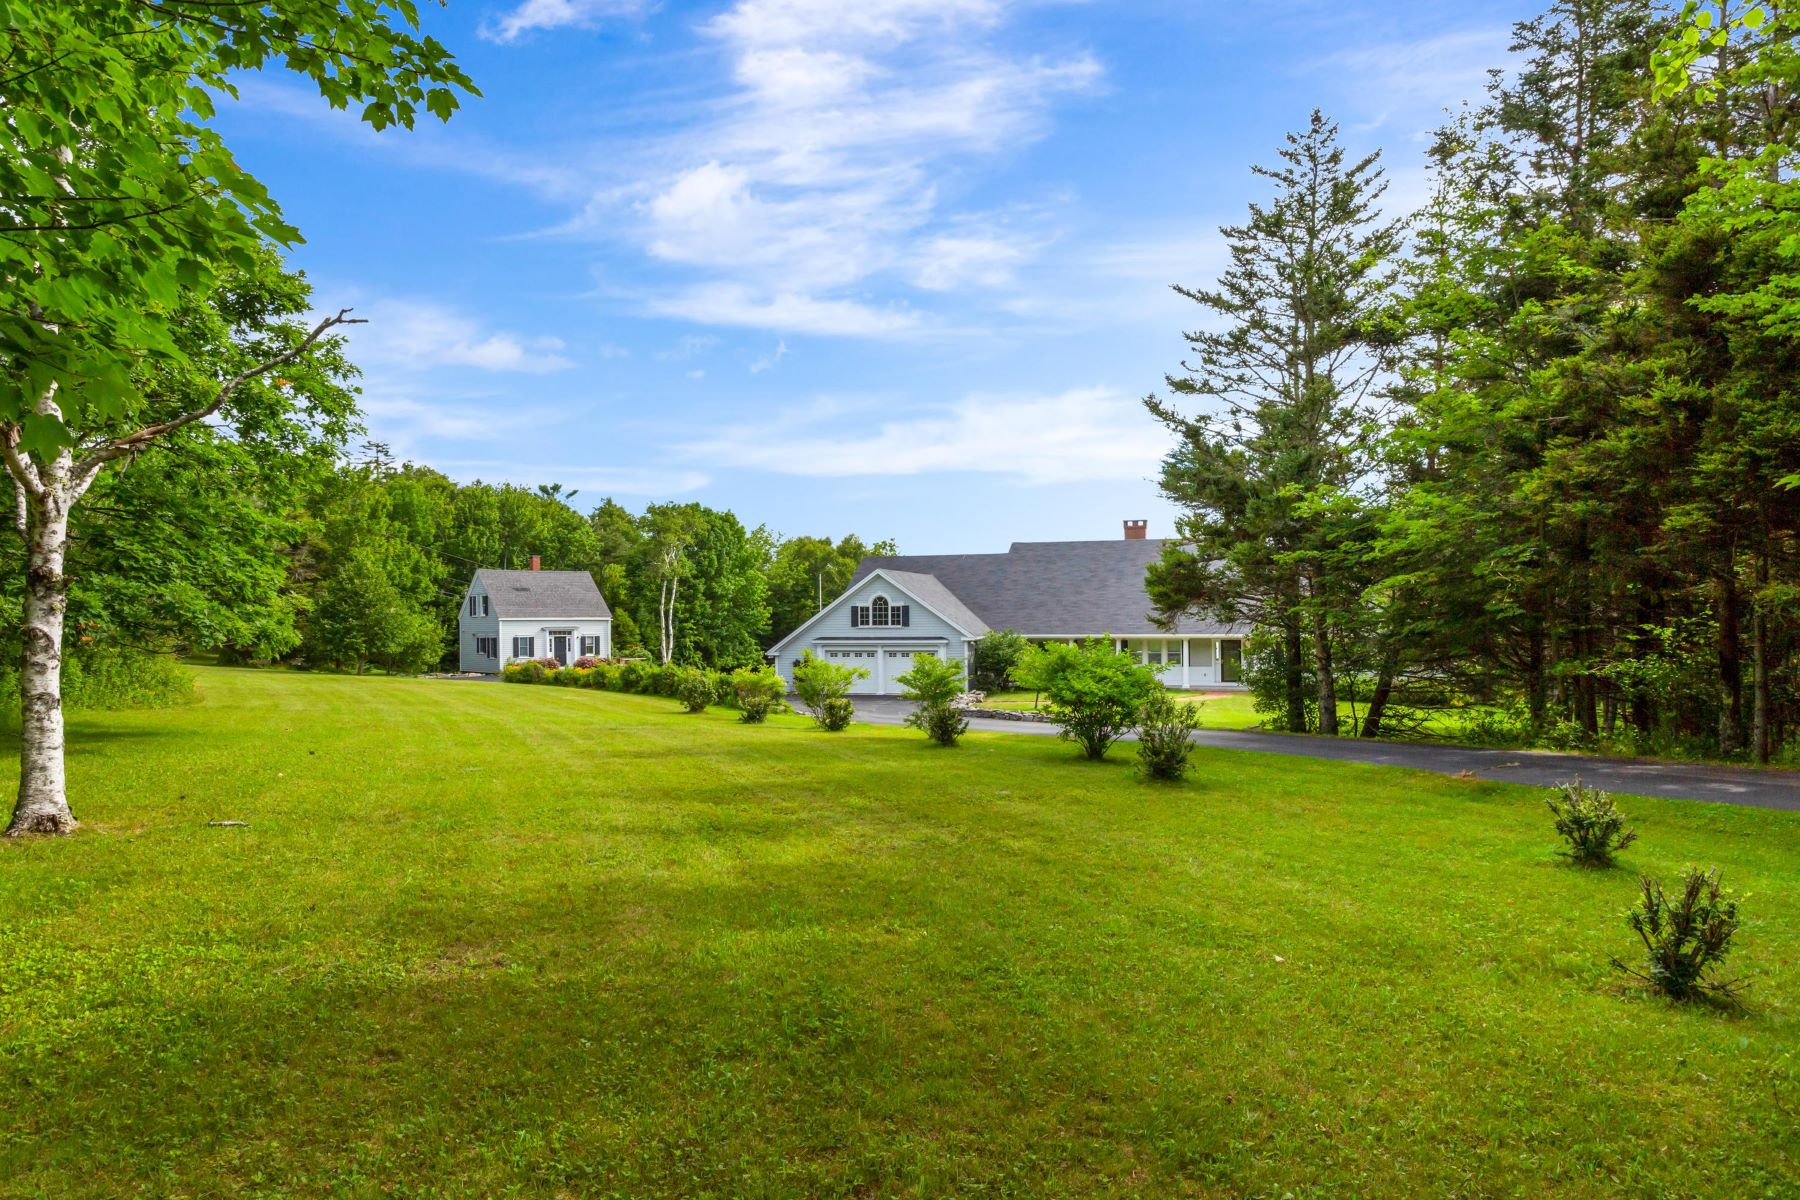 Single Family Homes for Active at 74 Pumpkin Cove Road Bristol, Maine 04554 United States